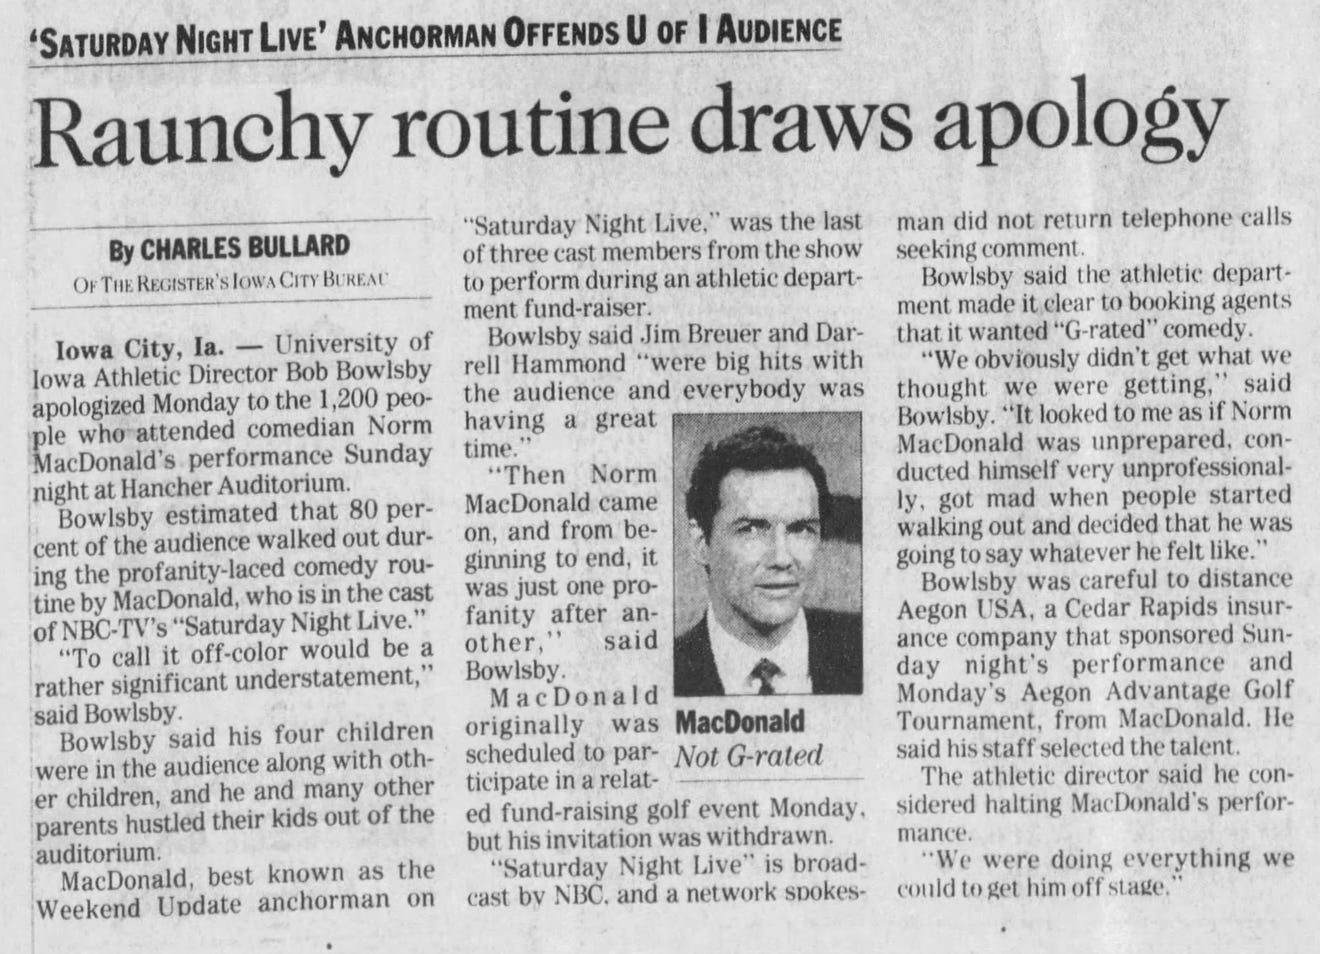 Report on Norm MacDonald's performance at the University of Iowa in The Des Moines Register